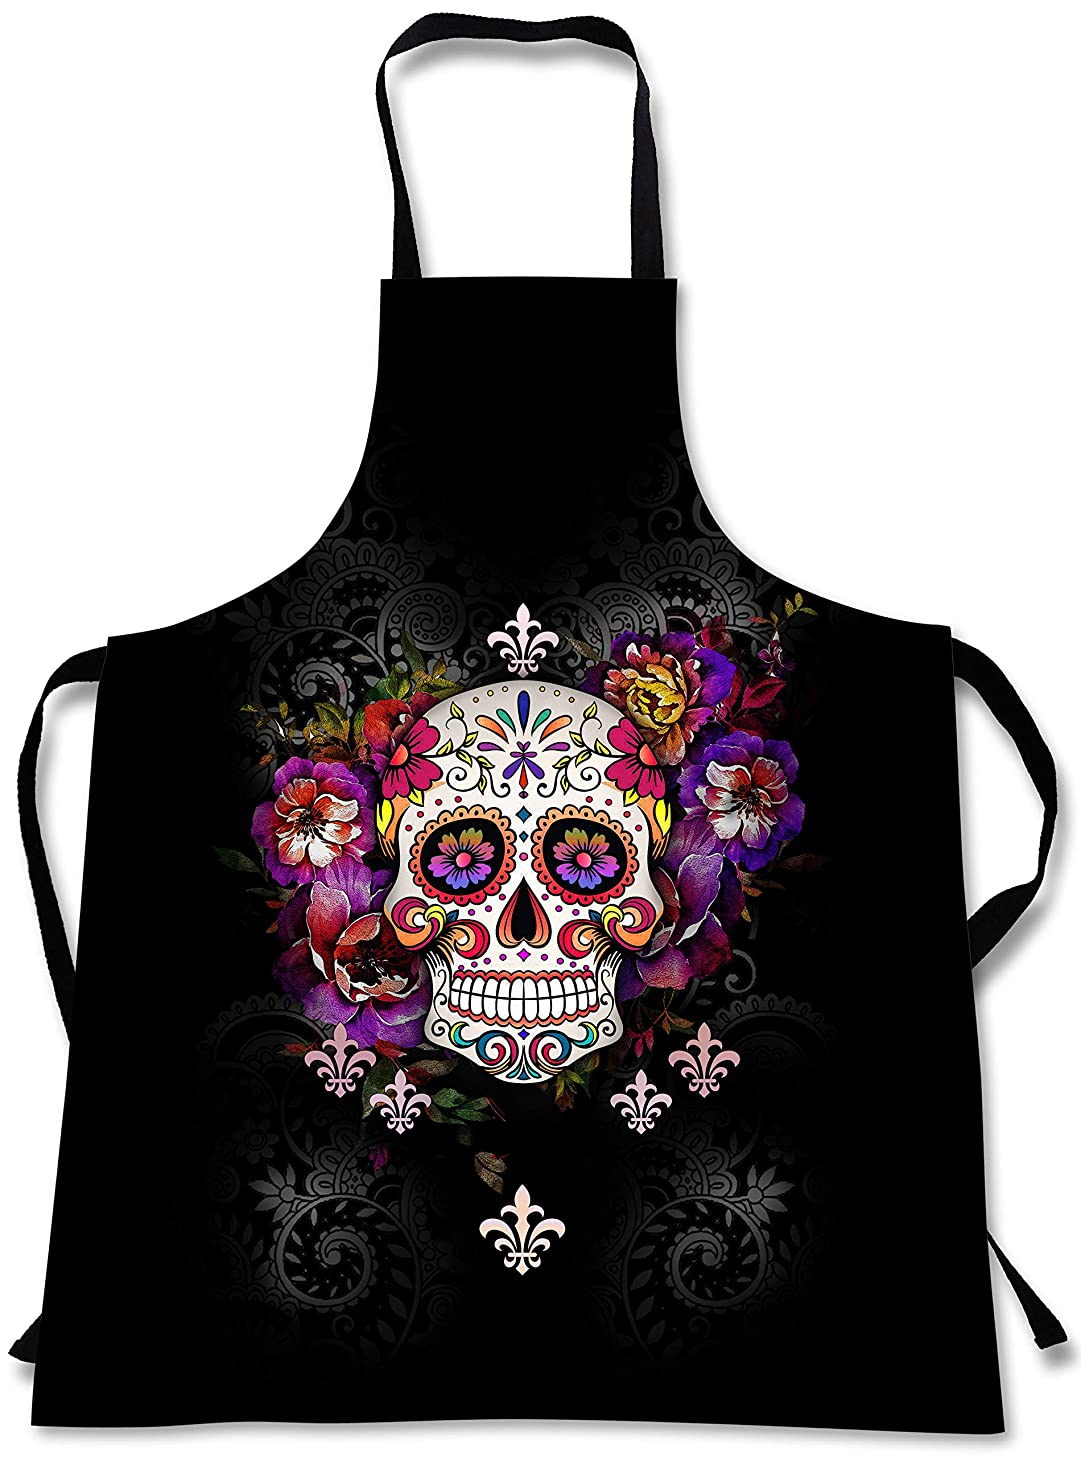 Sweet Gisele Sugar Skull Cooking Apron | 3D Print Chef Aprons | Great Home Kitchen Souvenir Gift Soft | Travel Accessories Made in USA | 1 Size Adjustable Bib Unisex (Black)